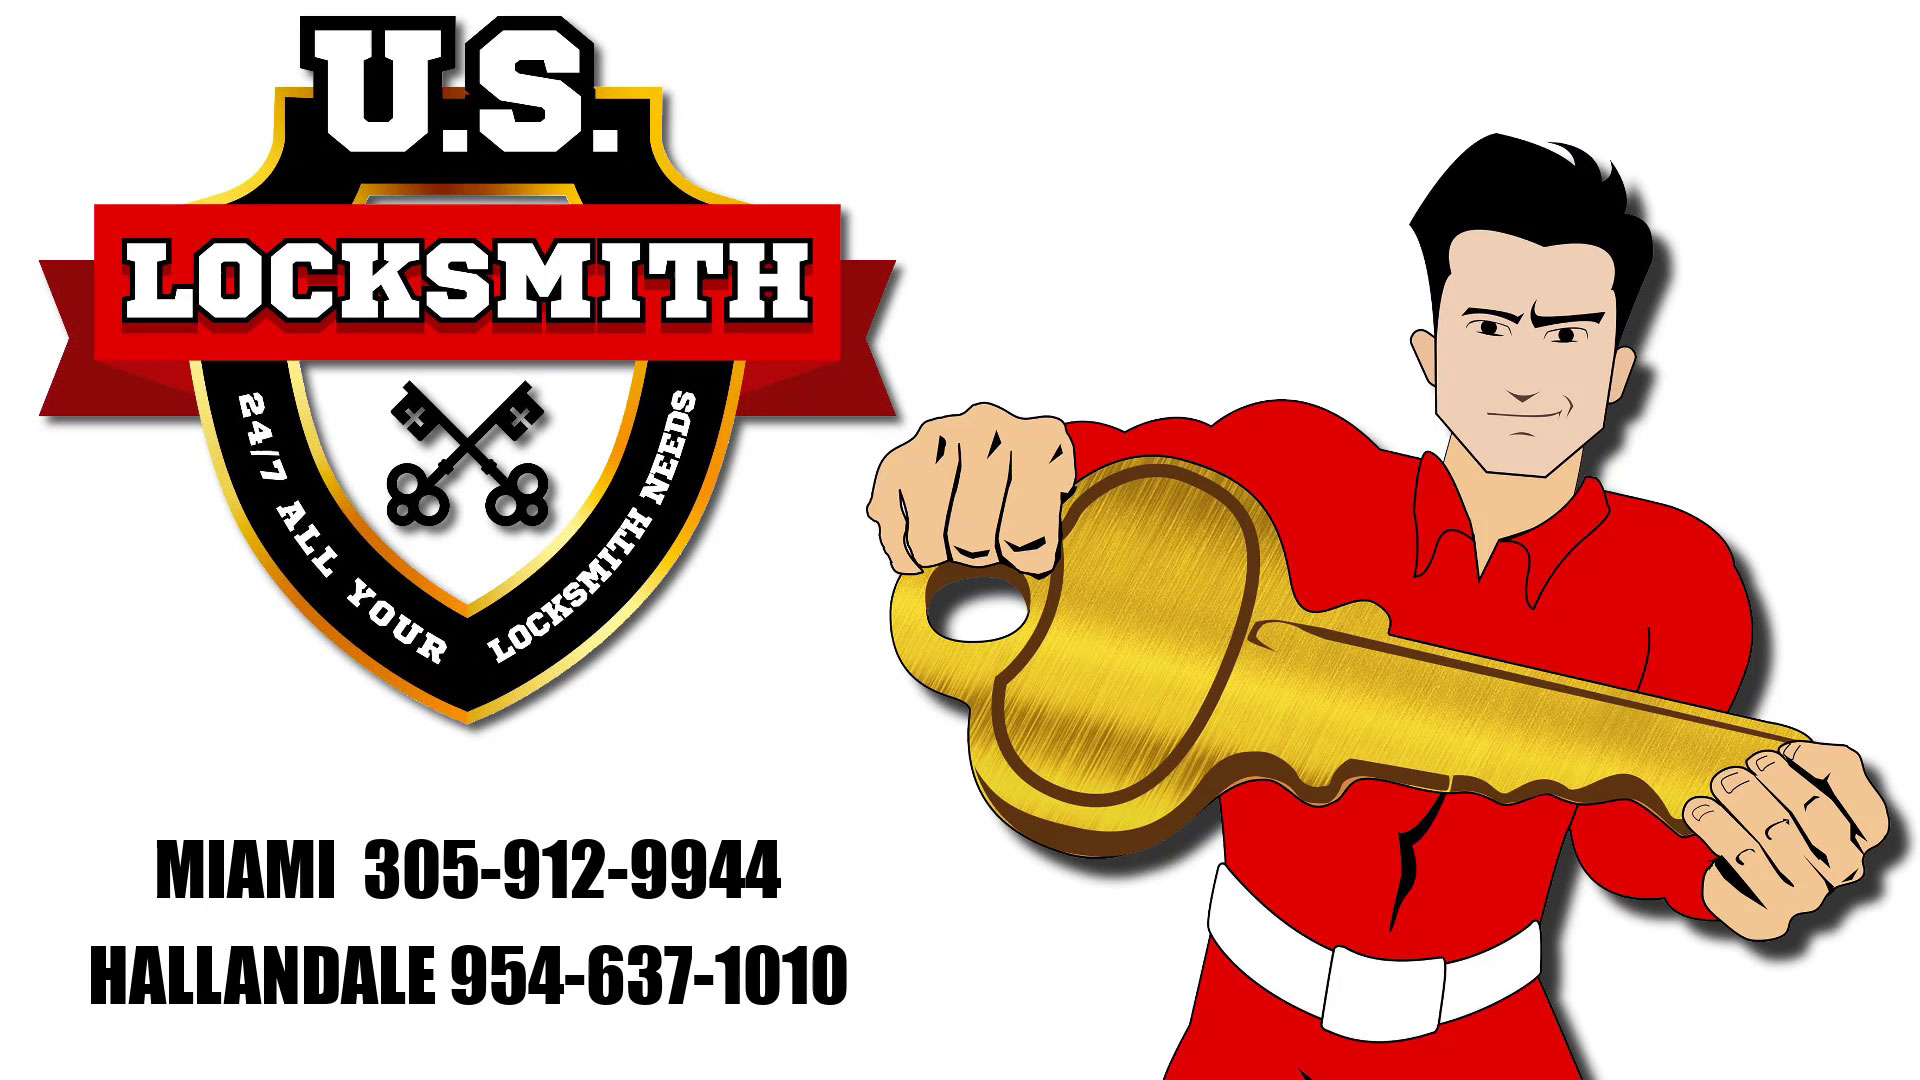 24/7 Hallandale Locksmith